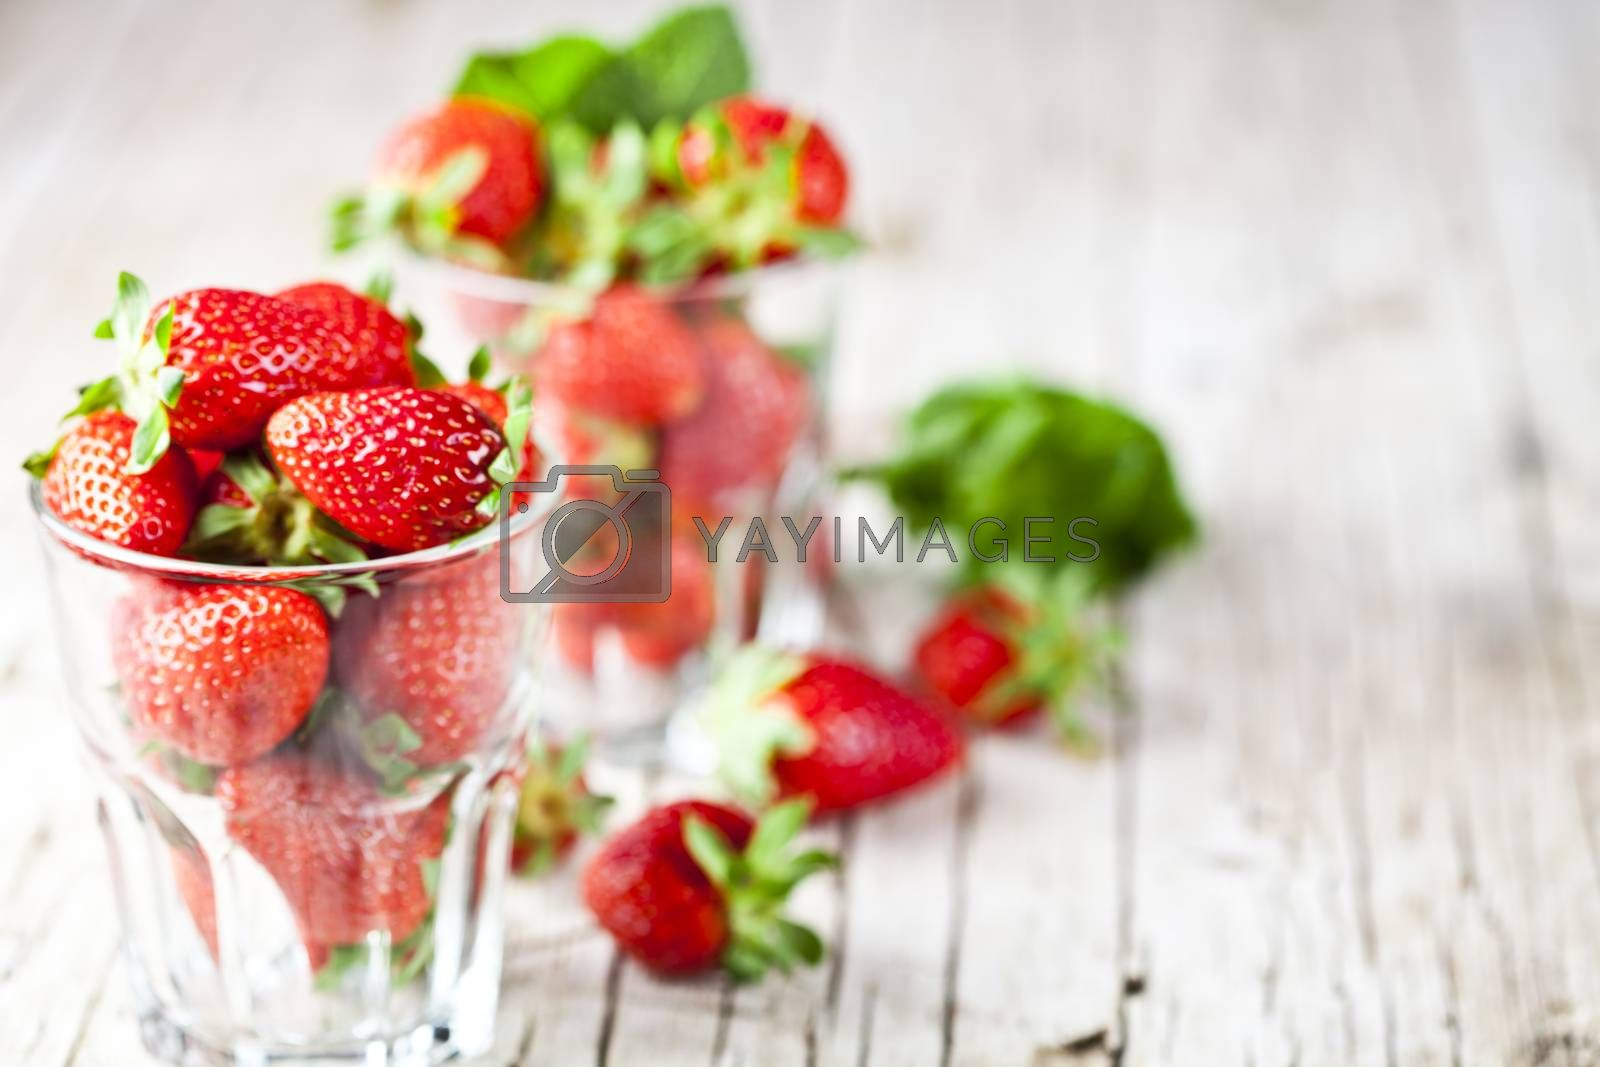 Organic red strawberries in two glasses and mint leaves on rustic wooden background. Healthy sweet food, vitamins and fruity concept. With copy space.